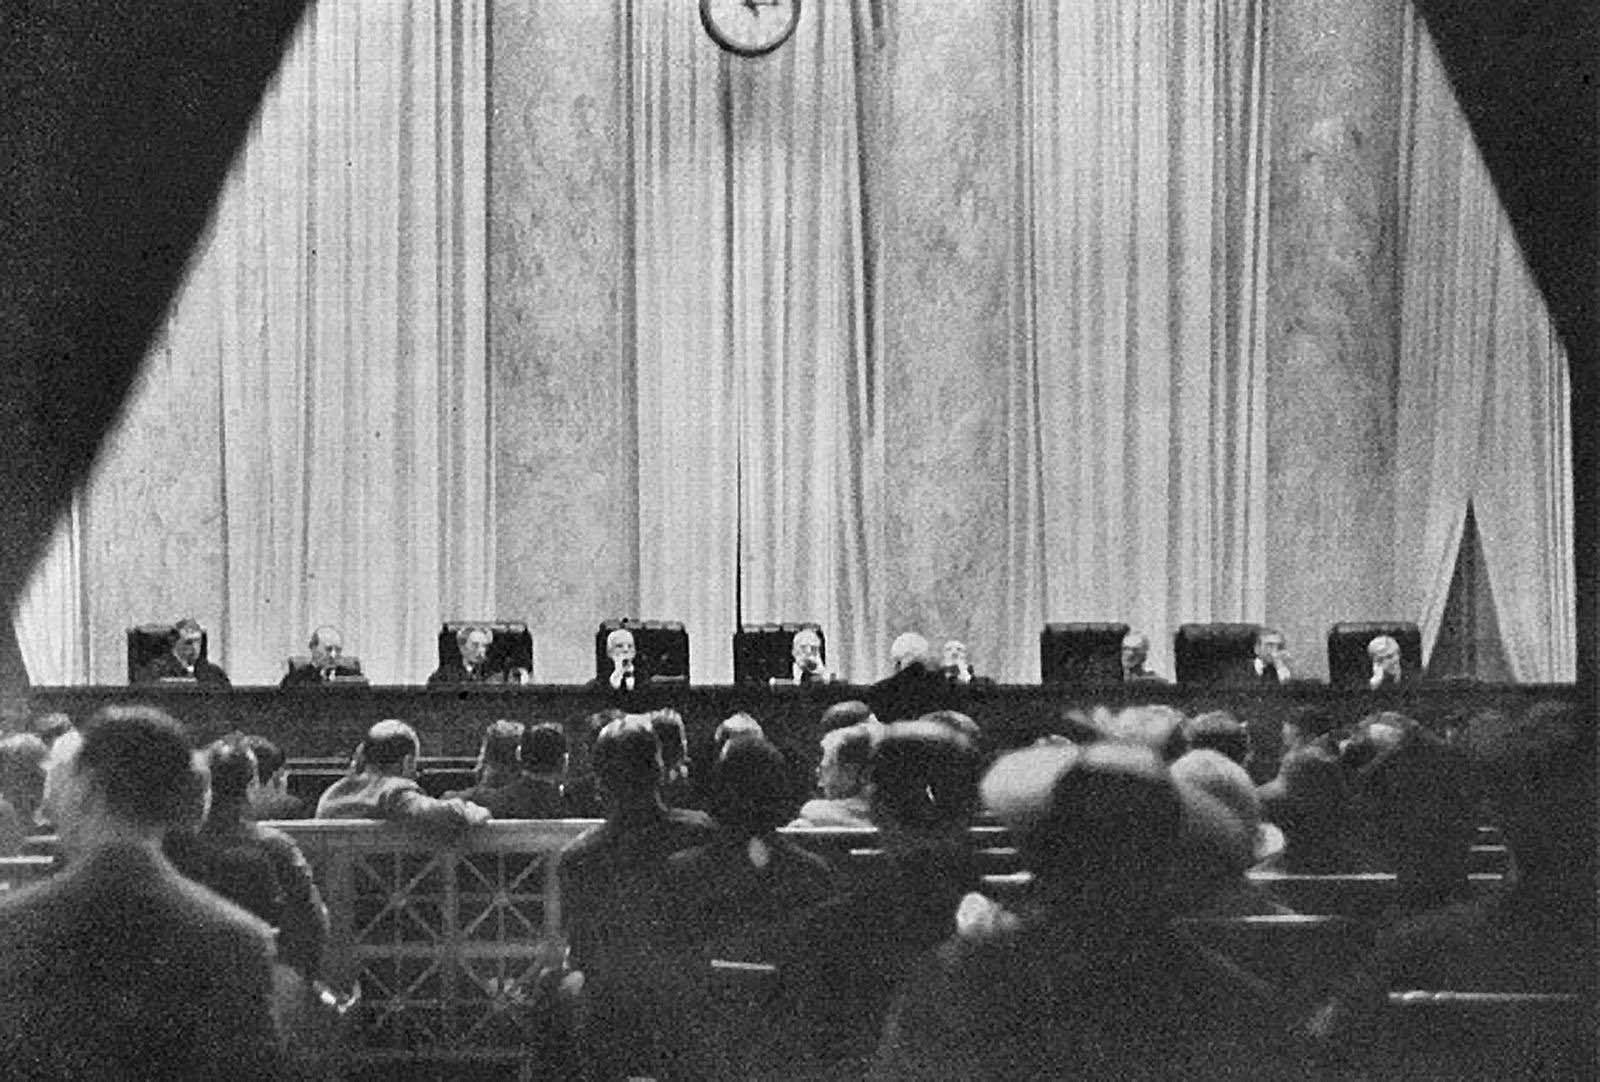 This other known photo of the Supreme Court in session. The photo was published in Time magazine on June 7, 1937.